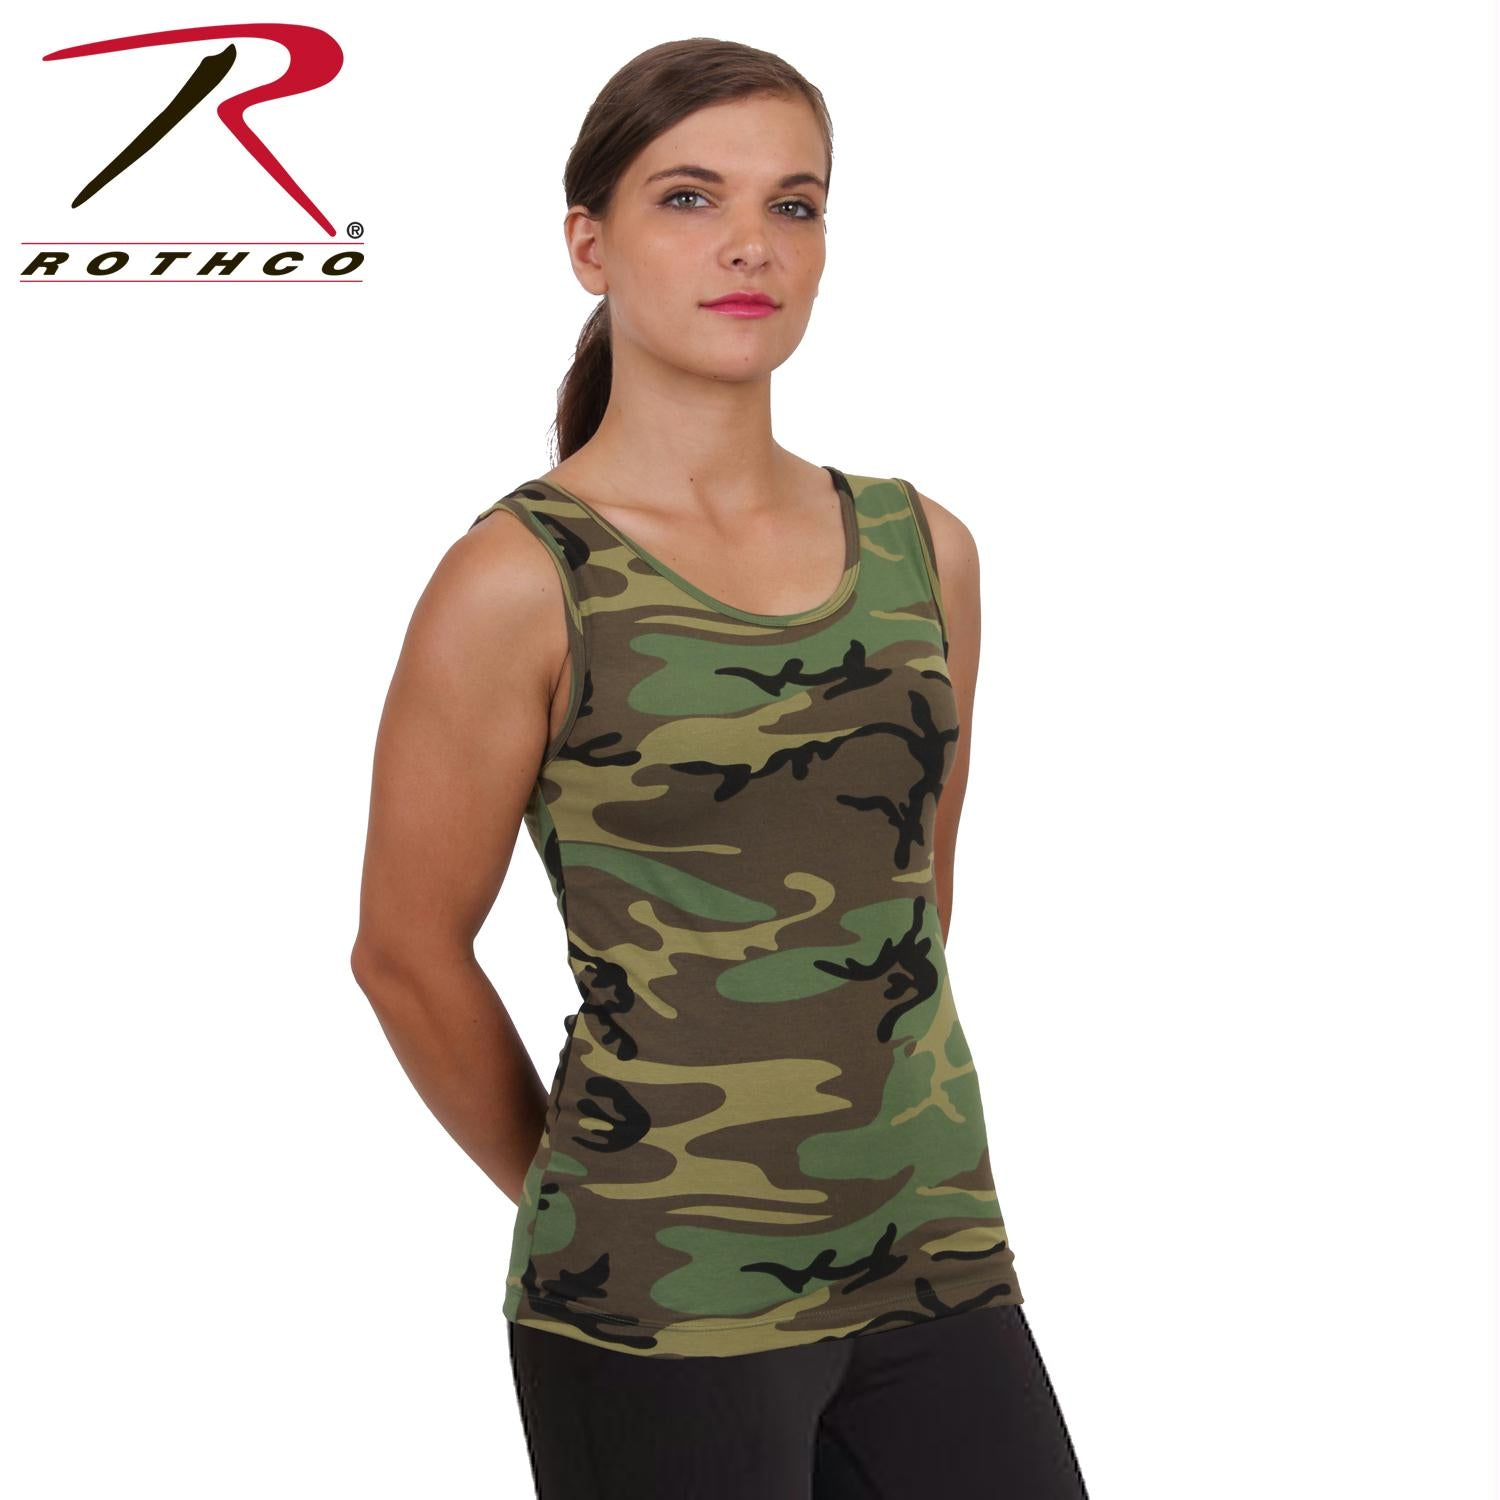 Rothco Womens Camo Stretch Tank Top - Woodland Camo / L